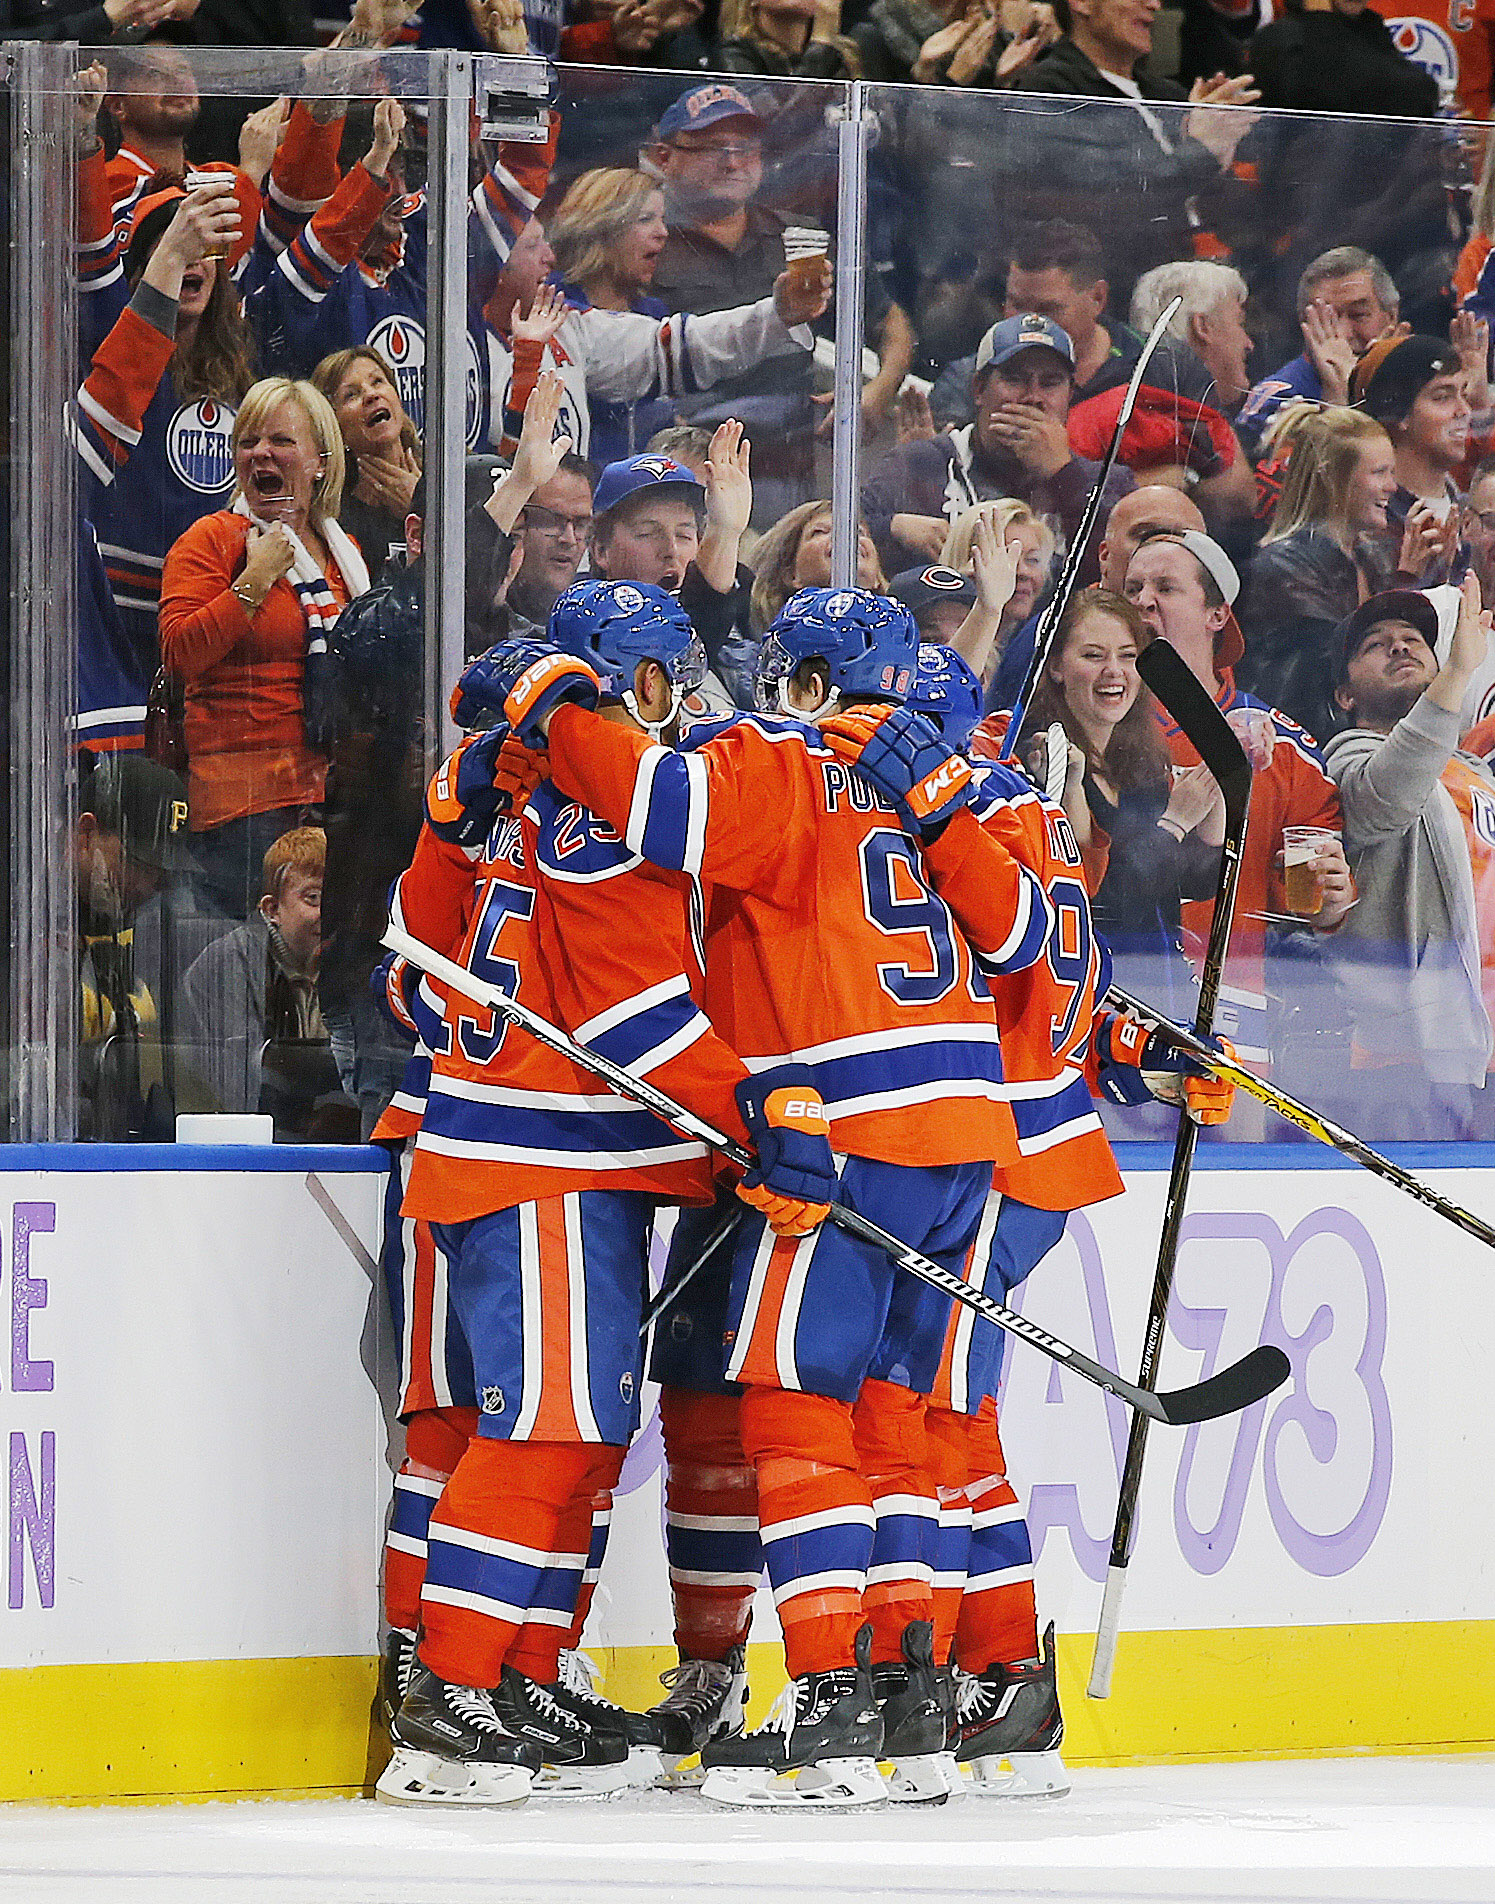 Edmonton Oilers off to Sizzling Start